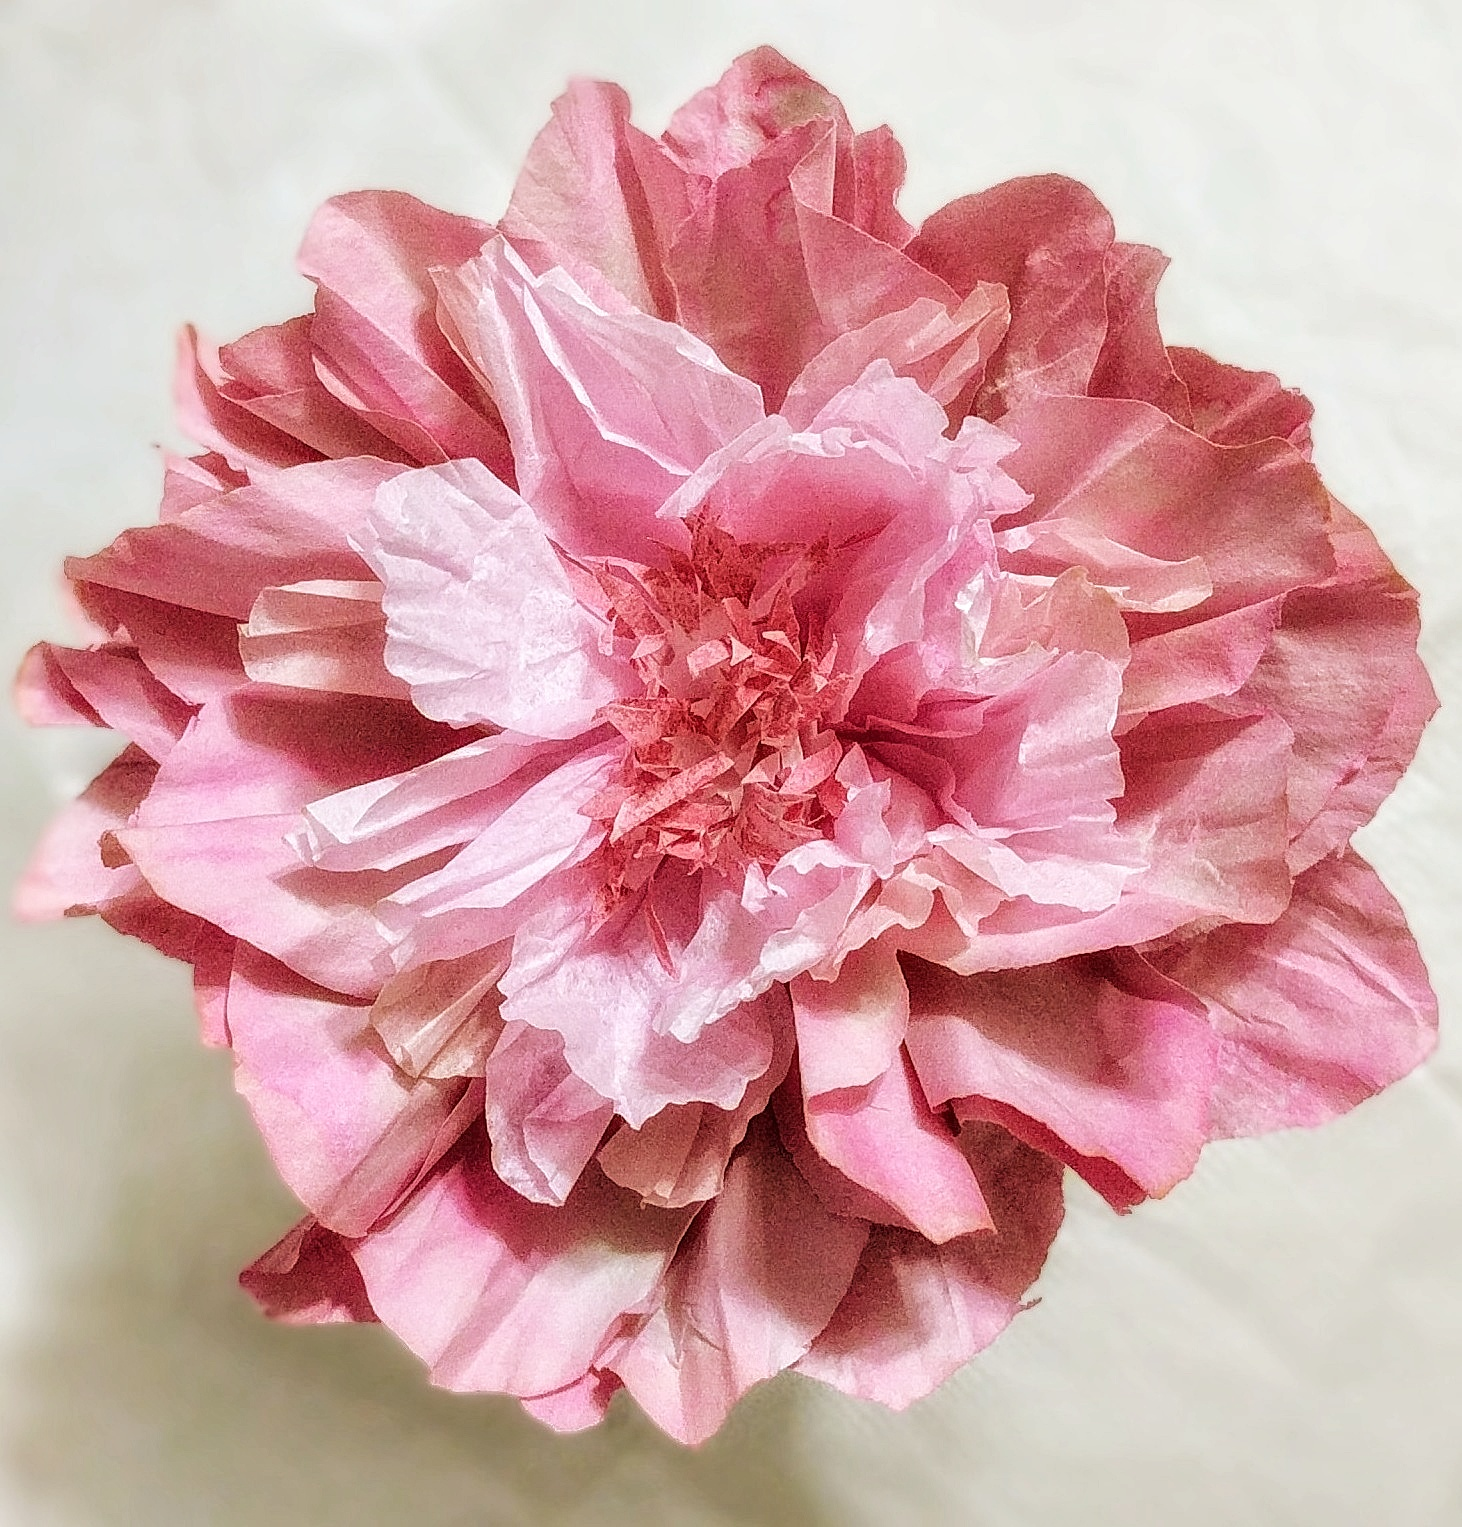 Dip-Dyed Colour - Left: Diluted craft paint gives this newsprint flower its rich hues.